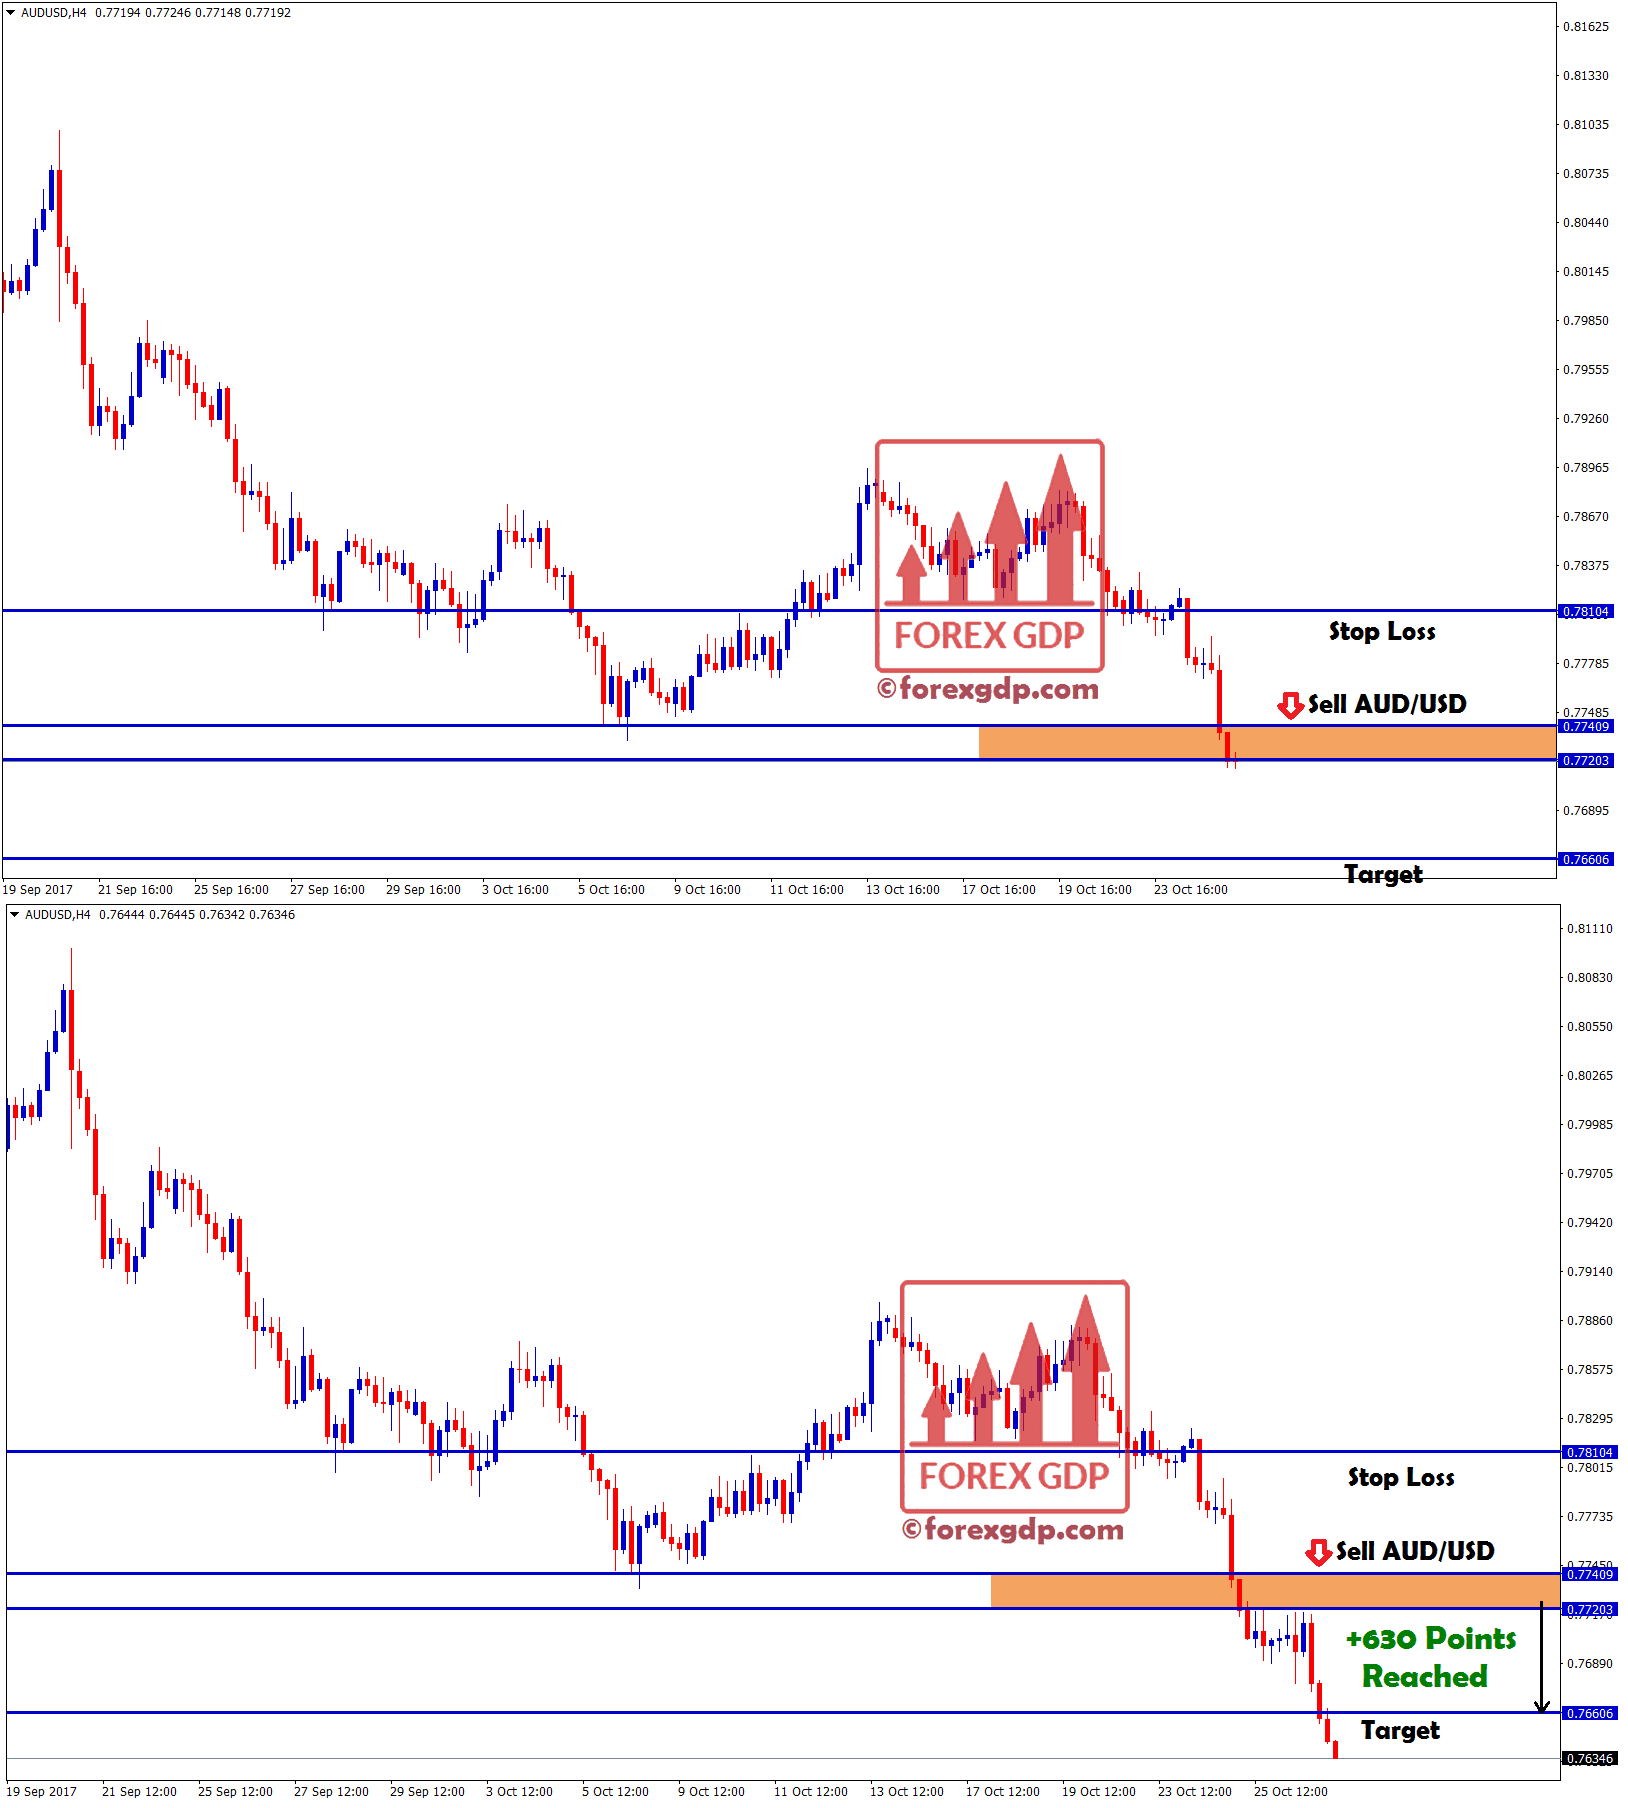 Sell audusd forex signals services with take profit